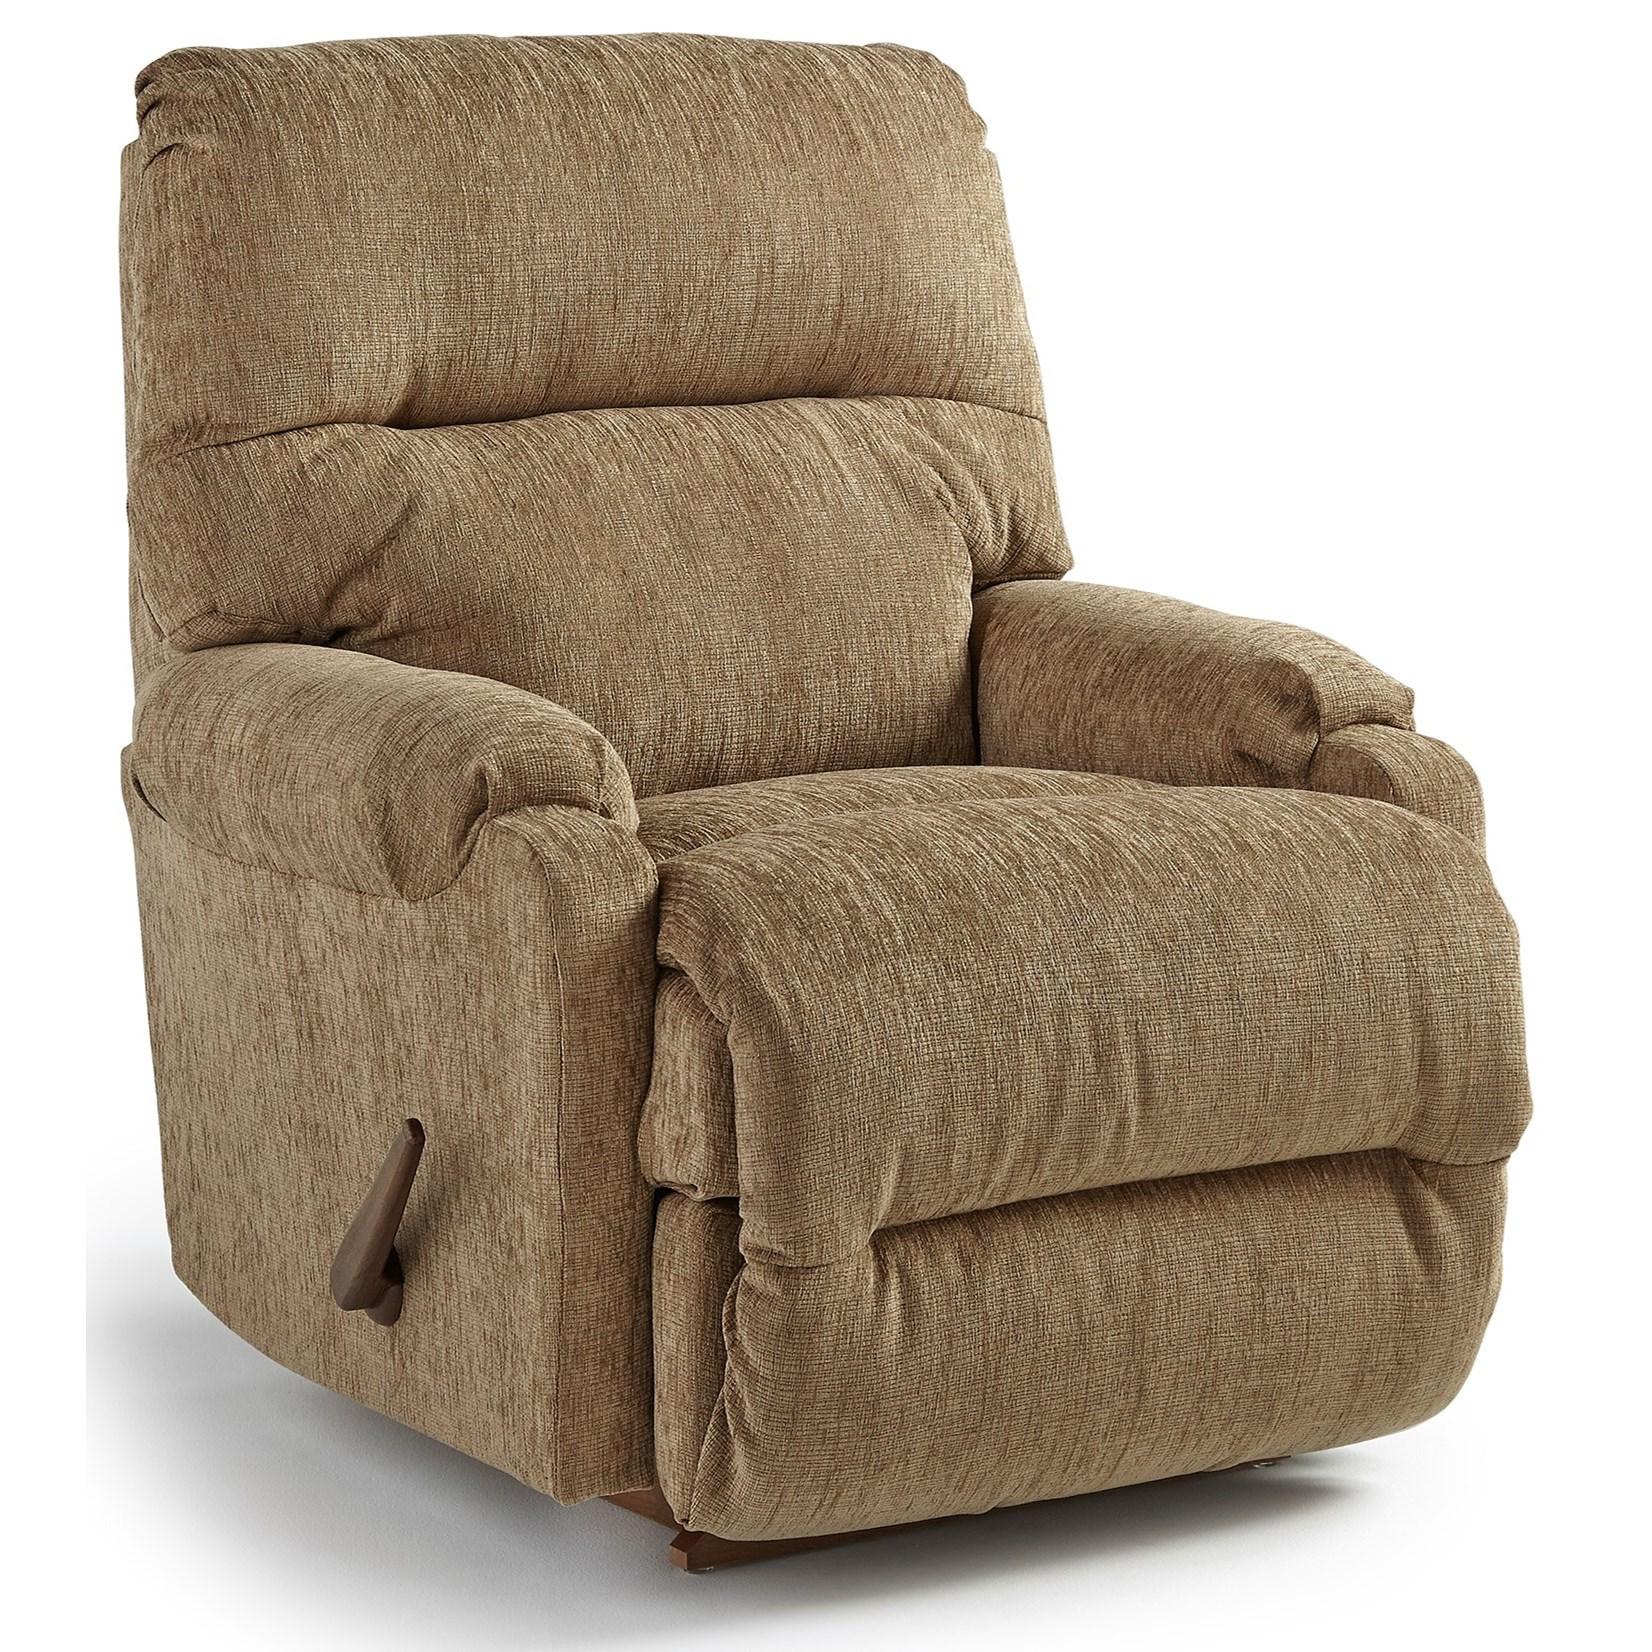 Best Home Furnishings Recliners - Petite Cannes Swivel Rocker Recliner - Item Number: 9AW09